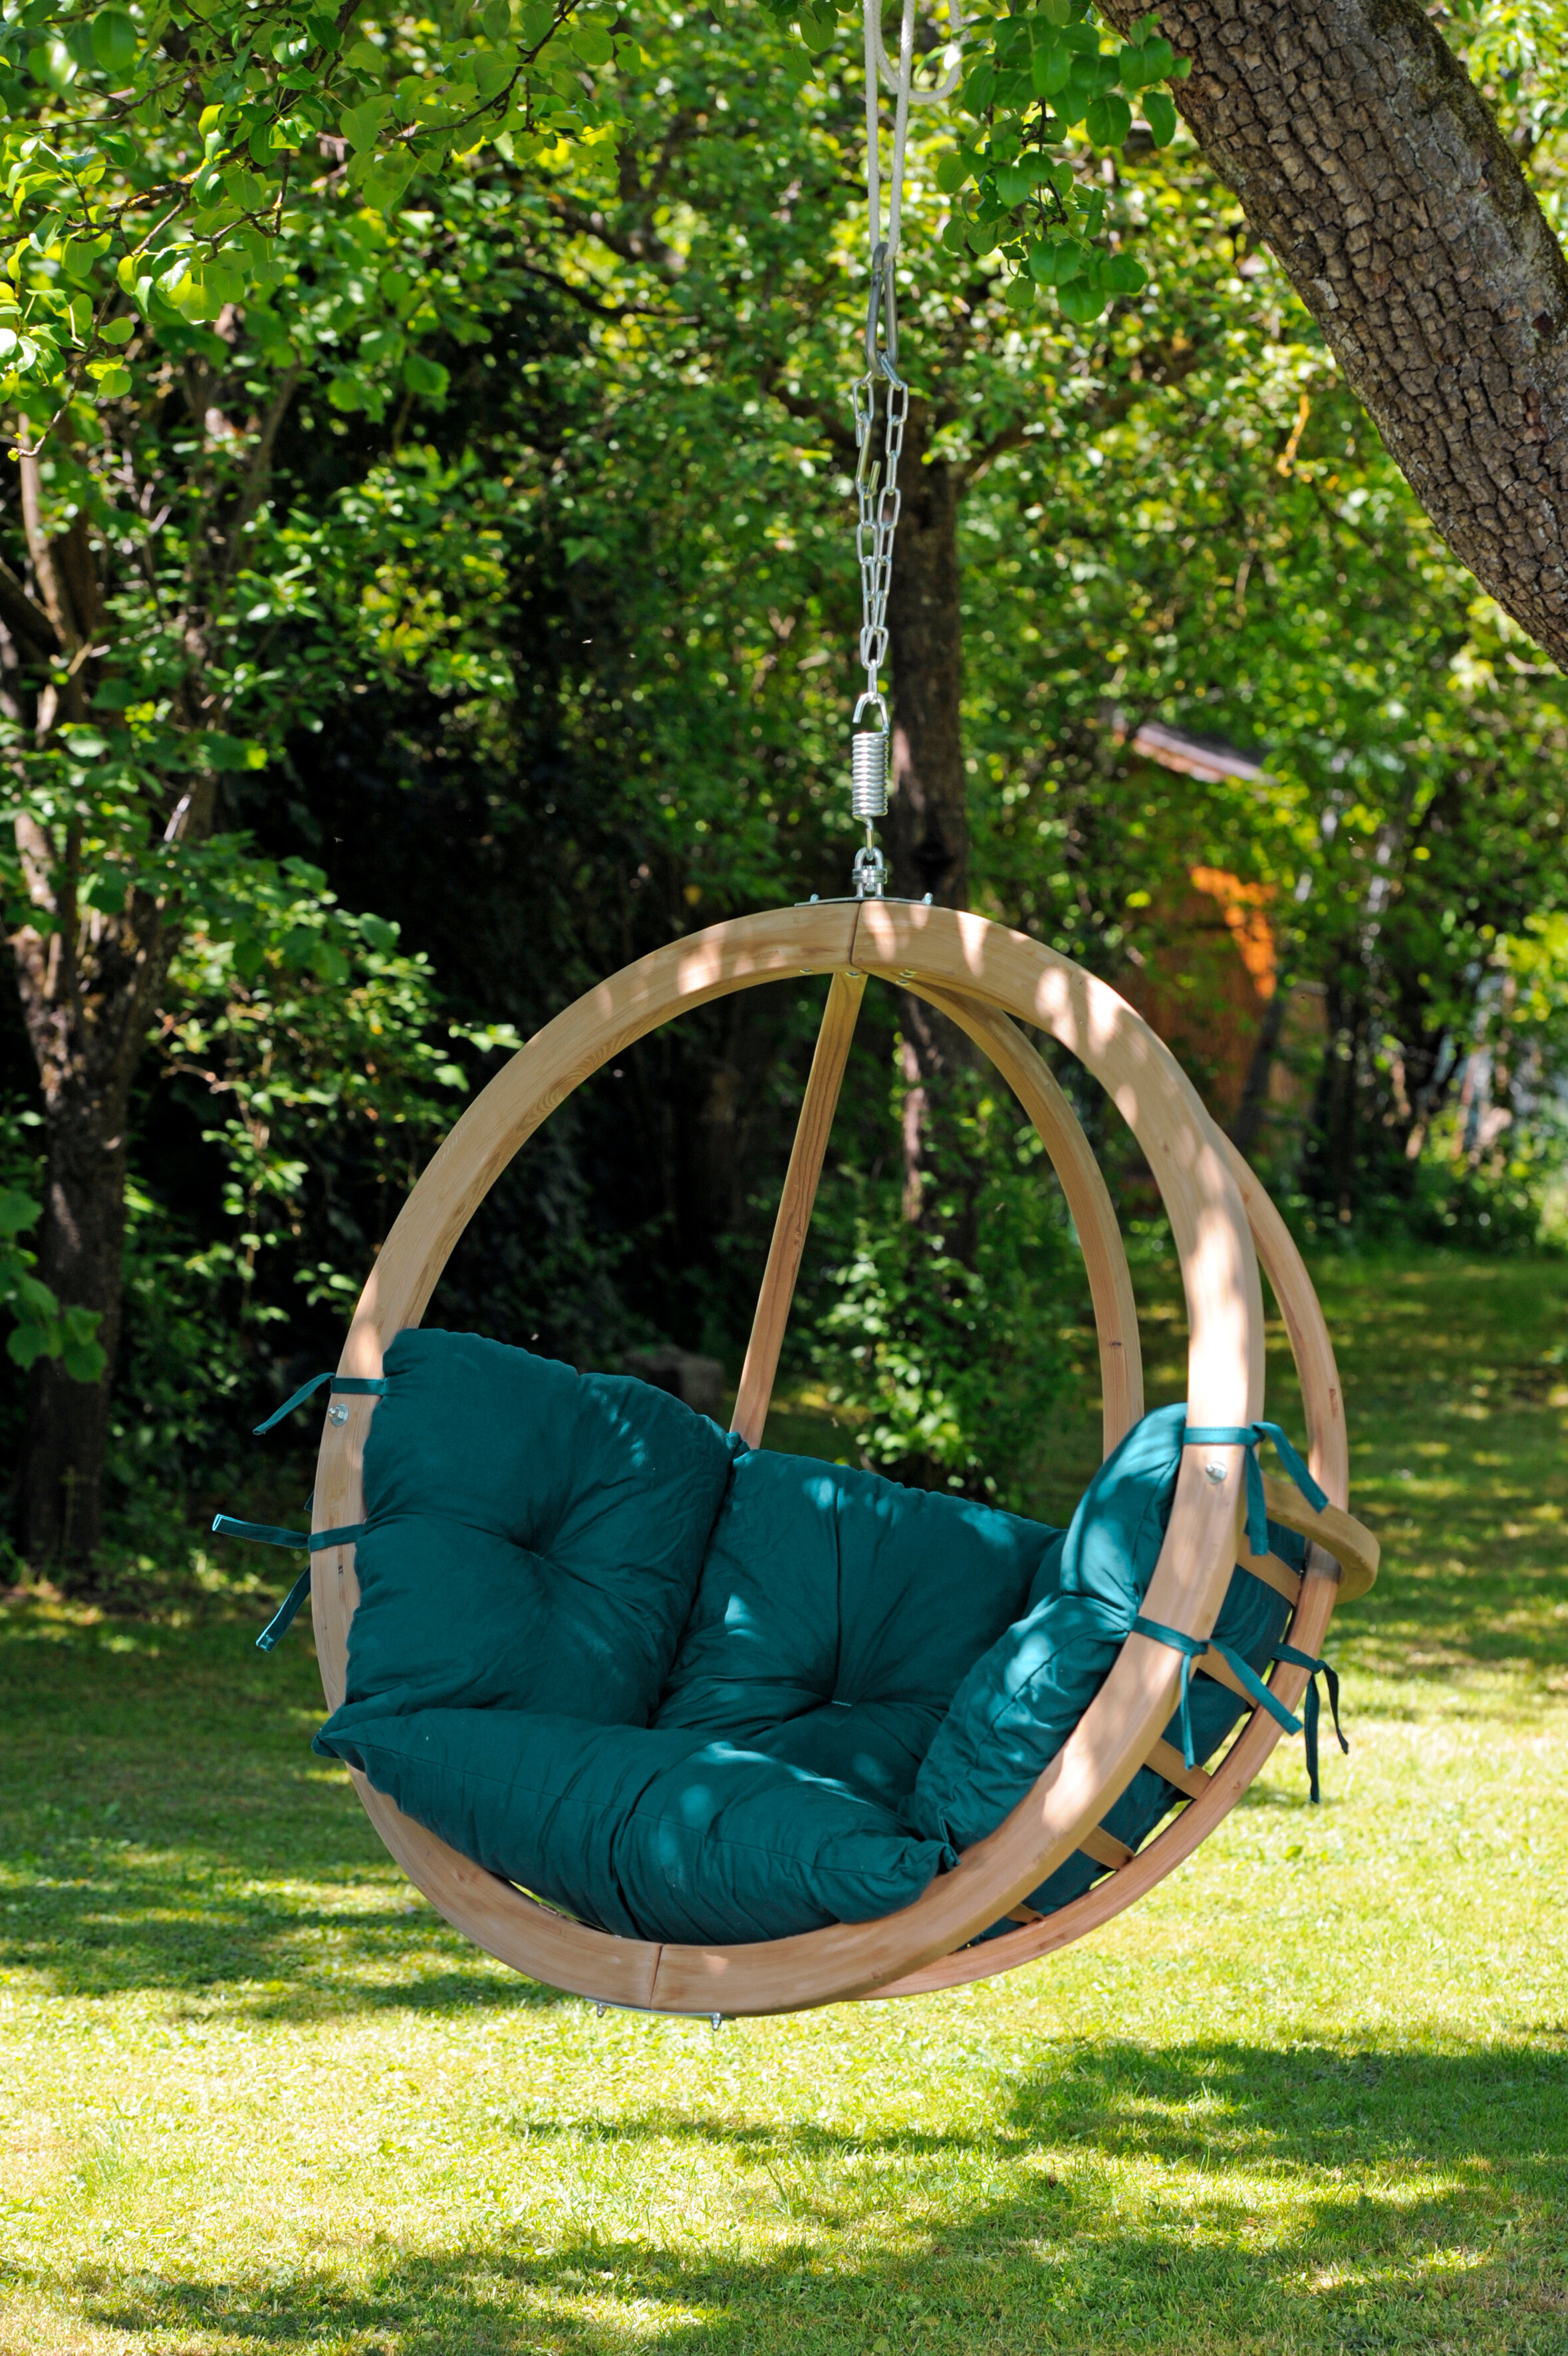 Picture of: 40 Hanging Tree Hammock Outdoor Playground Swing Chair Seat Accessories Included Patio Lawn Garden Patio Furniture Accessories